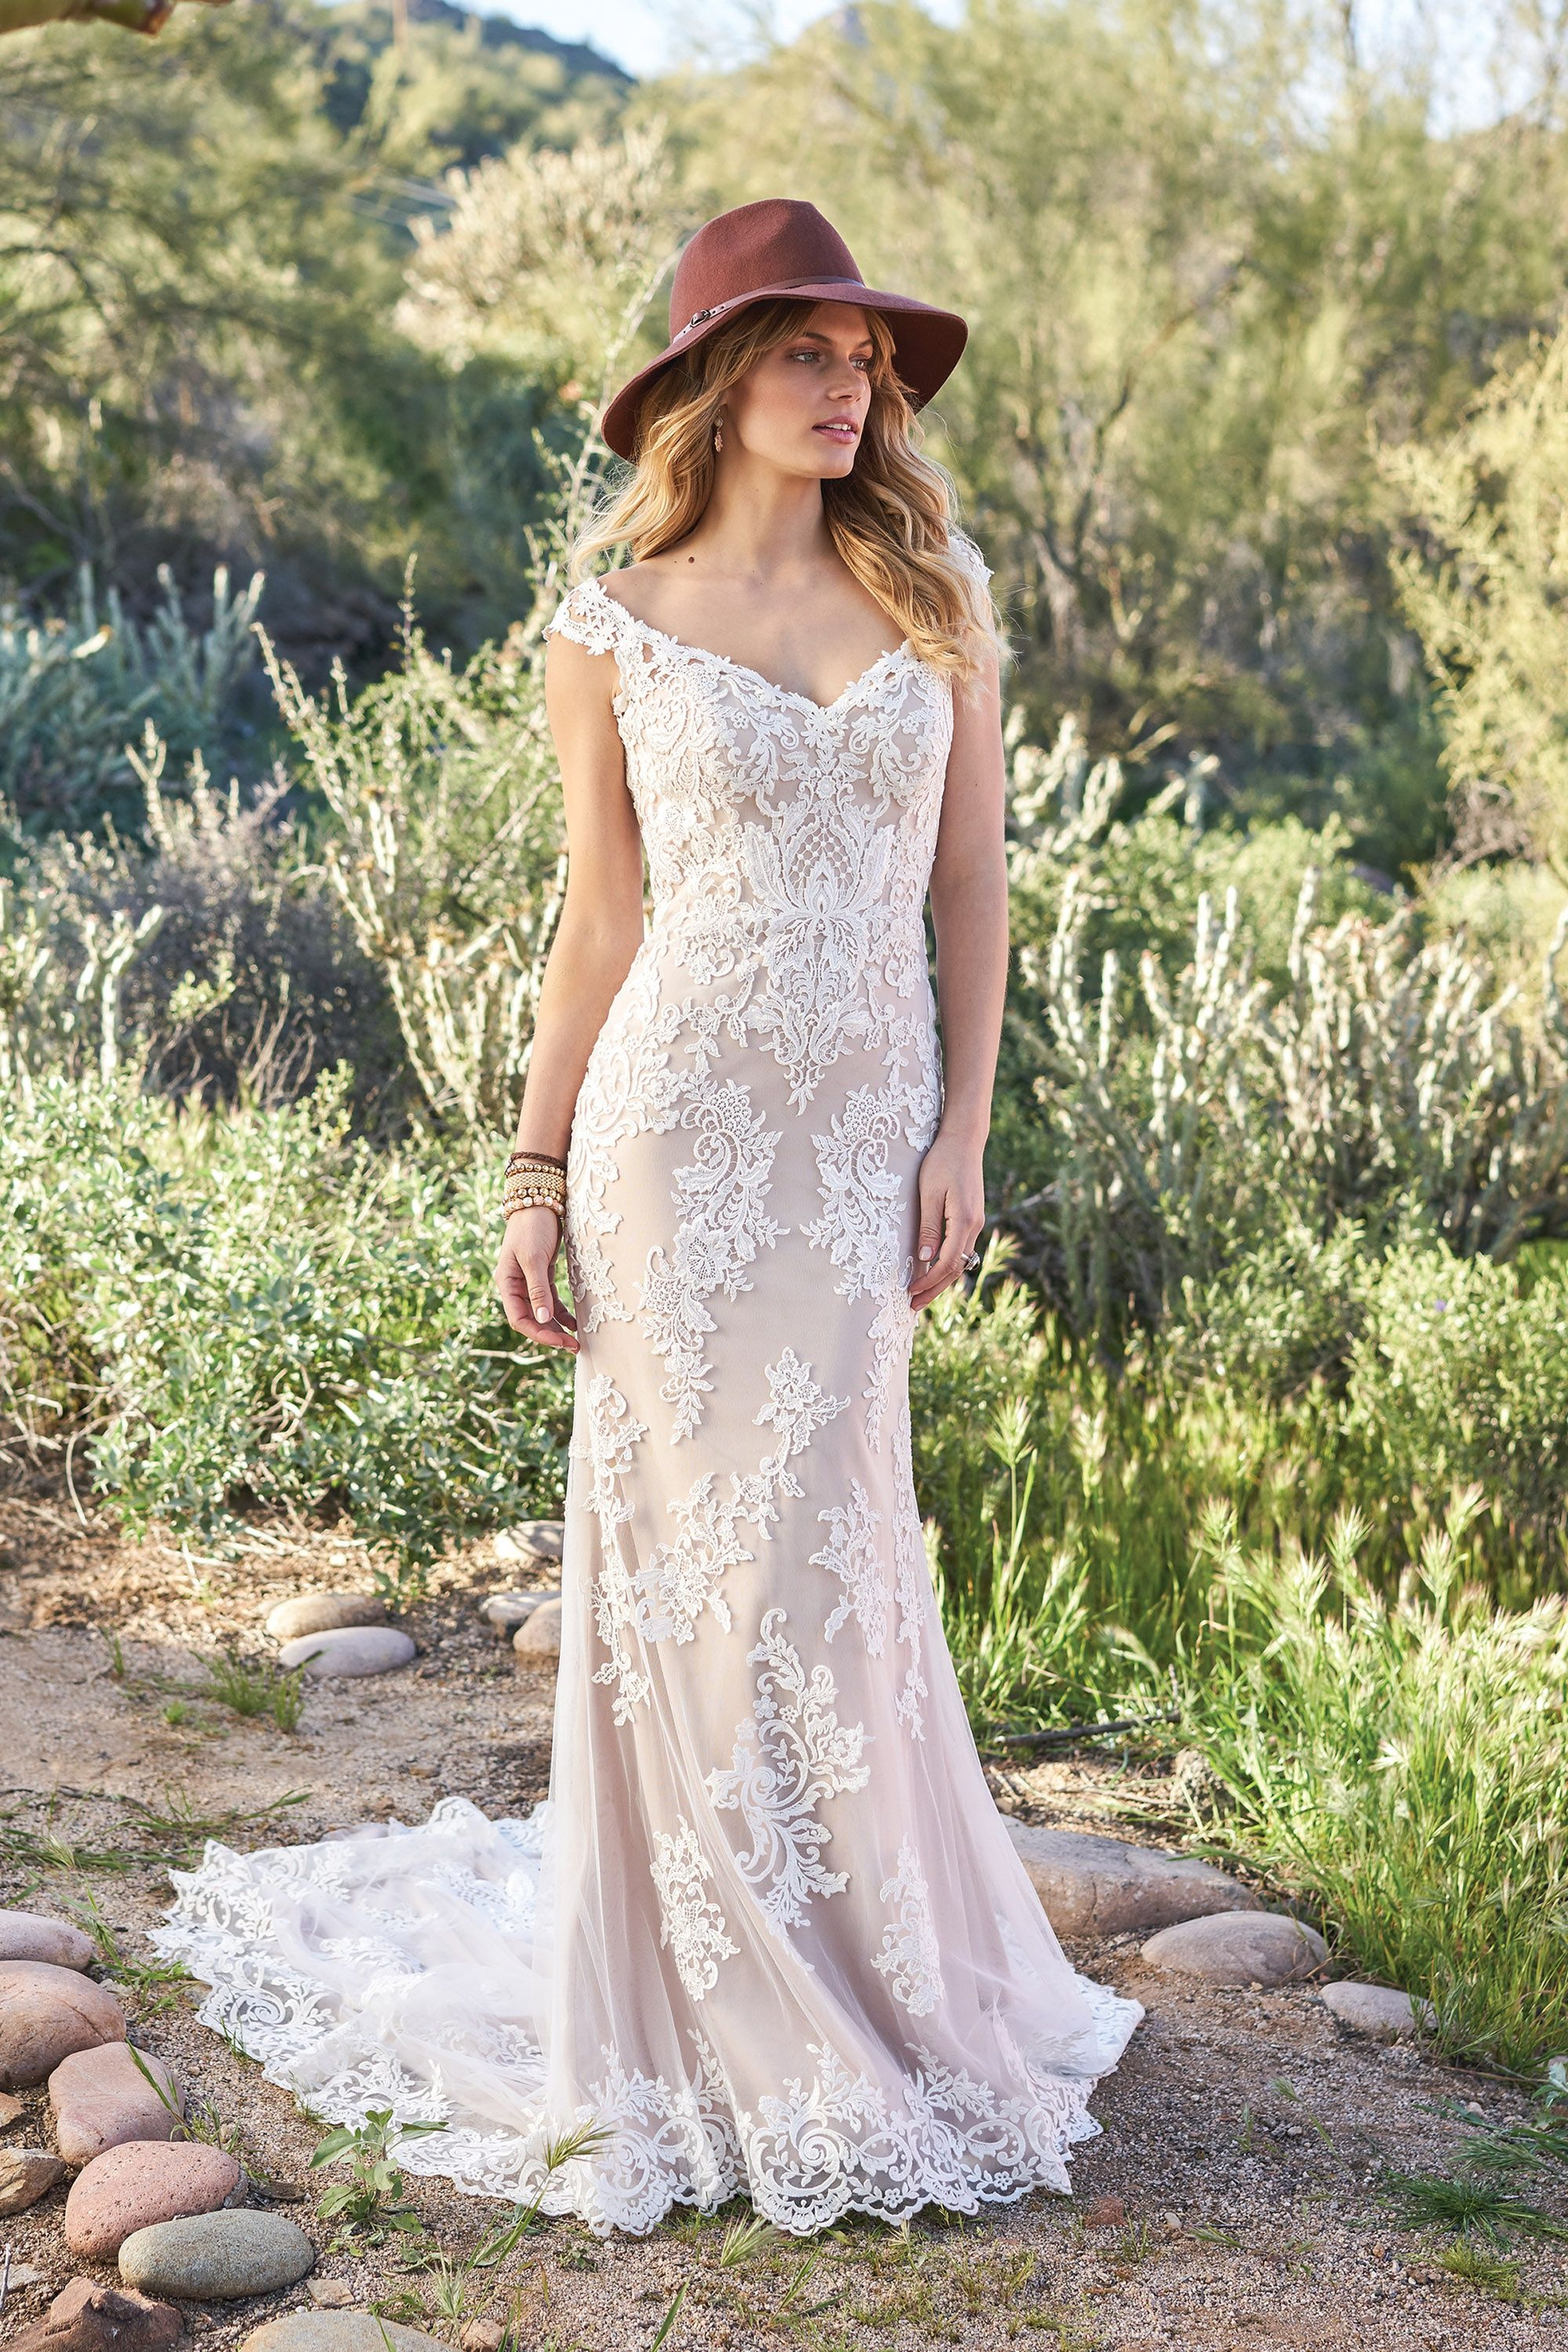 Lace off shoulder wedding dress august 2019 COMING SOON Lillian West  IvoryIvoryNude Size  Venice Lace